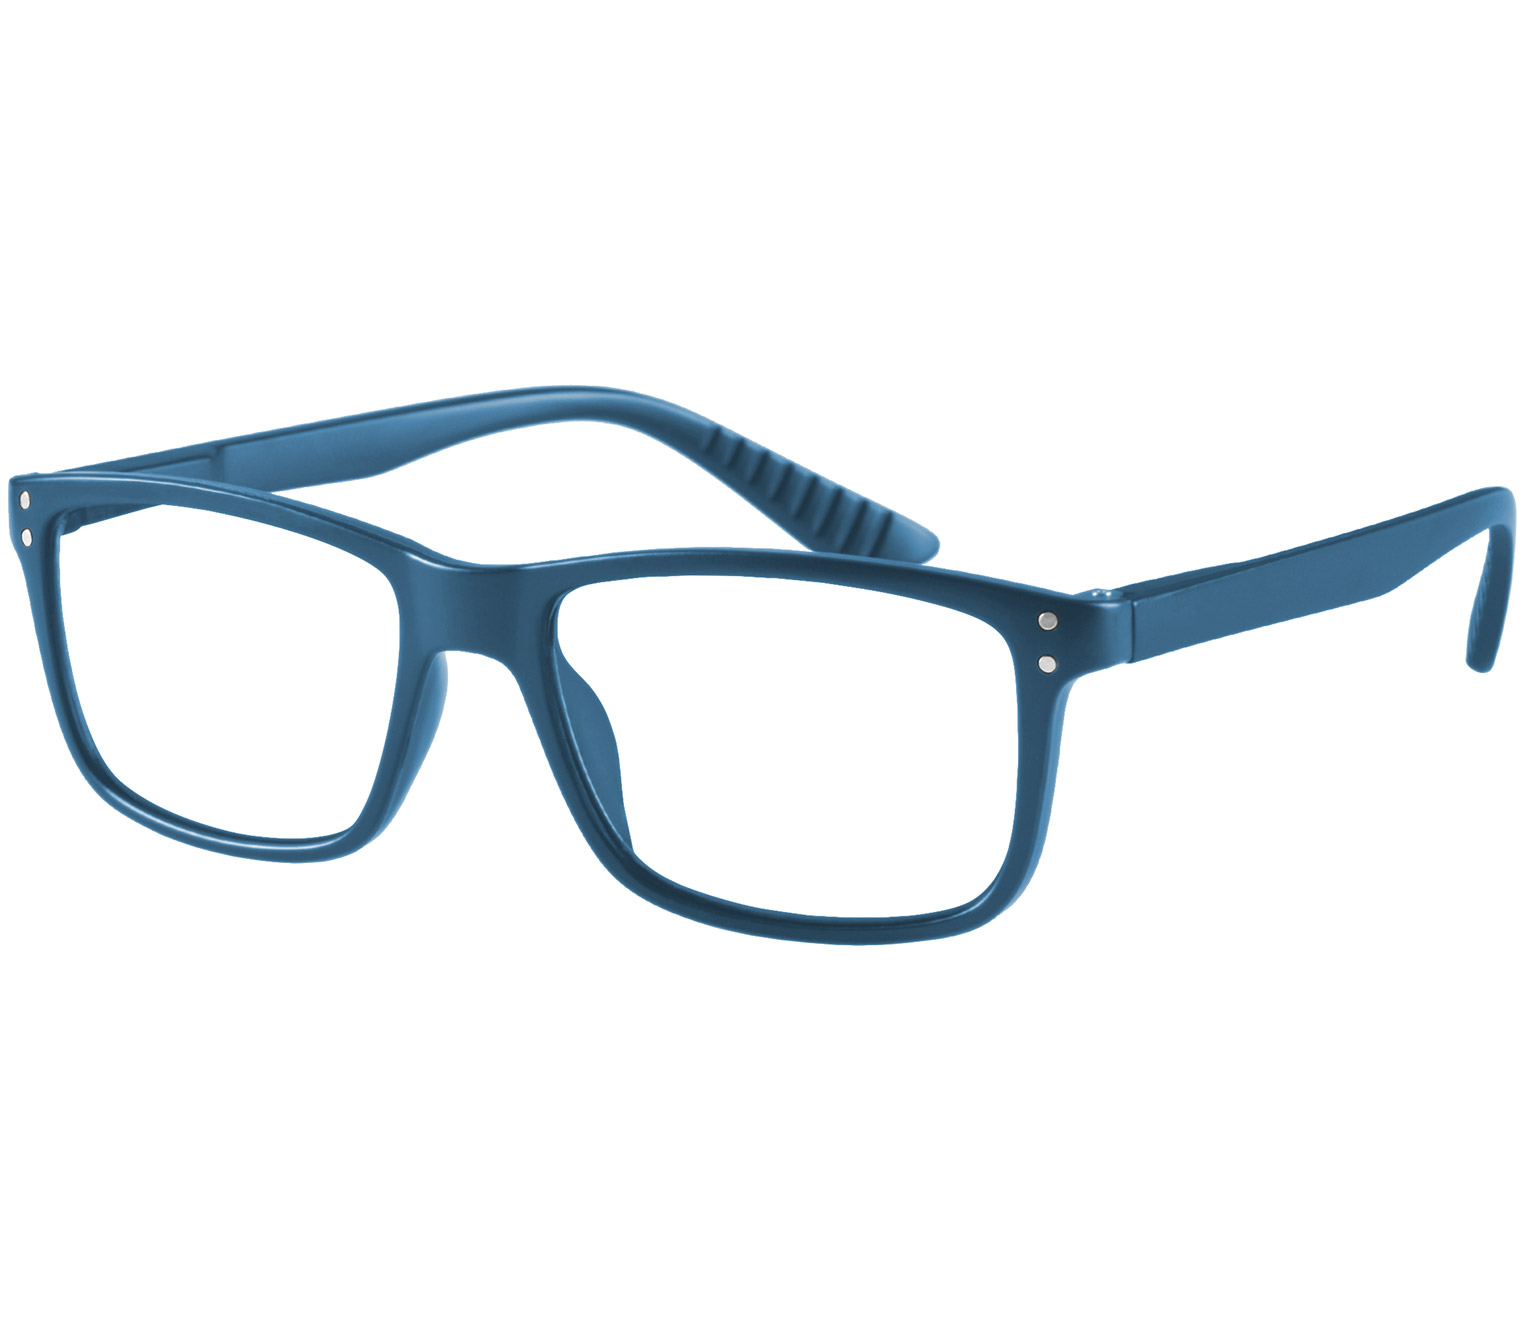 Main Image (Angle) - Dexter (Blue) Classic Reading Glasses